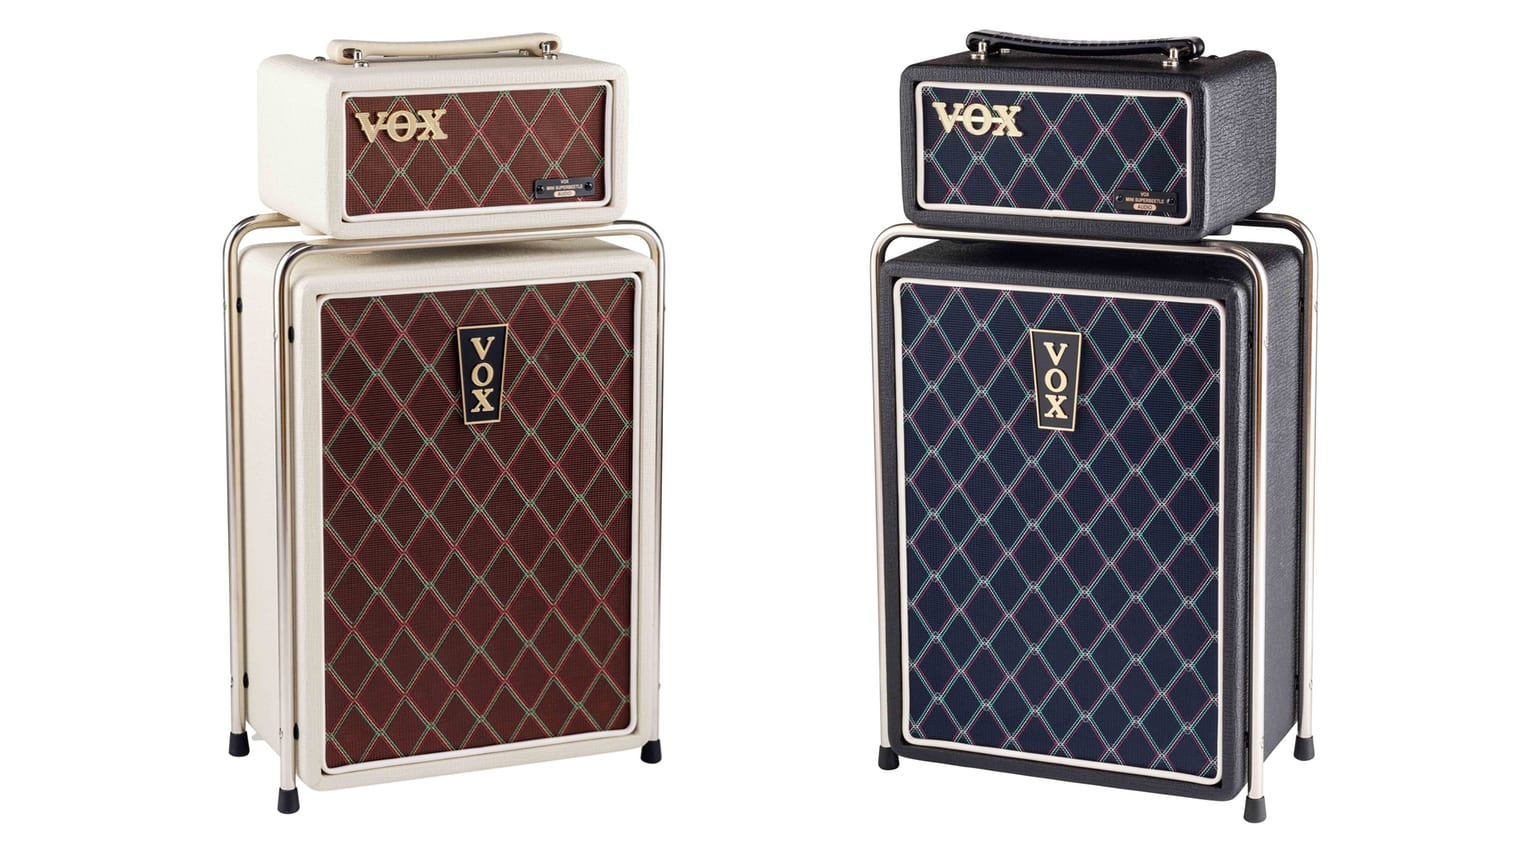 Vox Mini SuperBeetle Audio Ivory or Black?